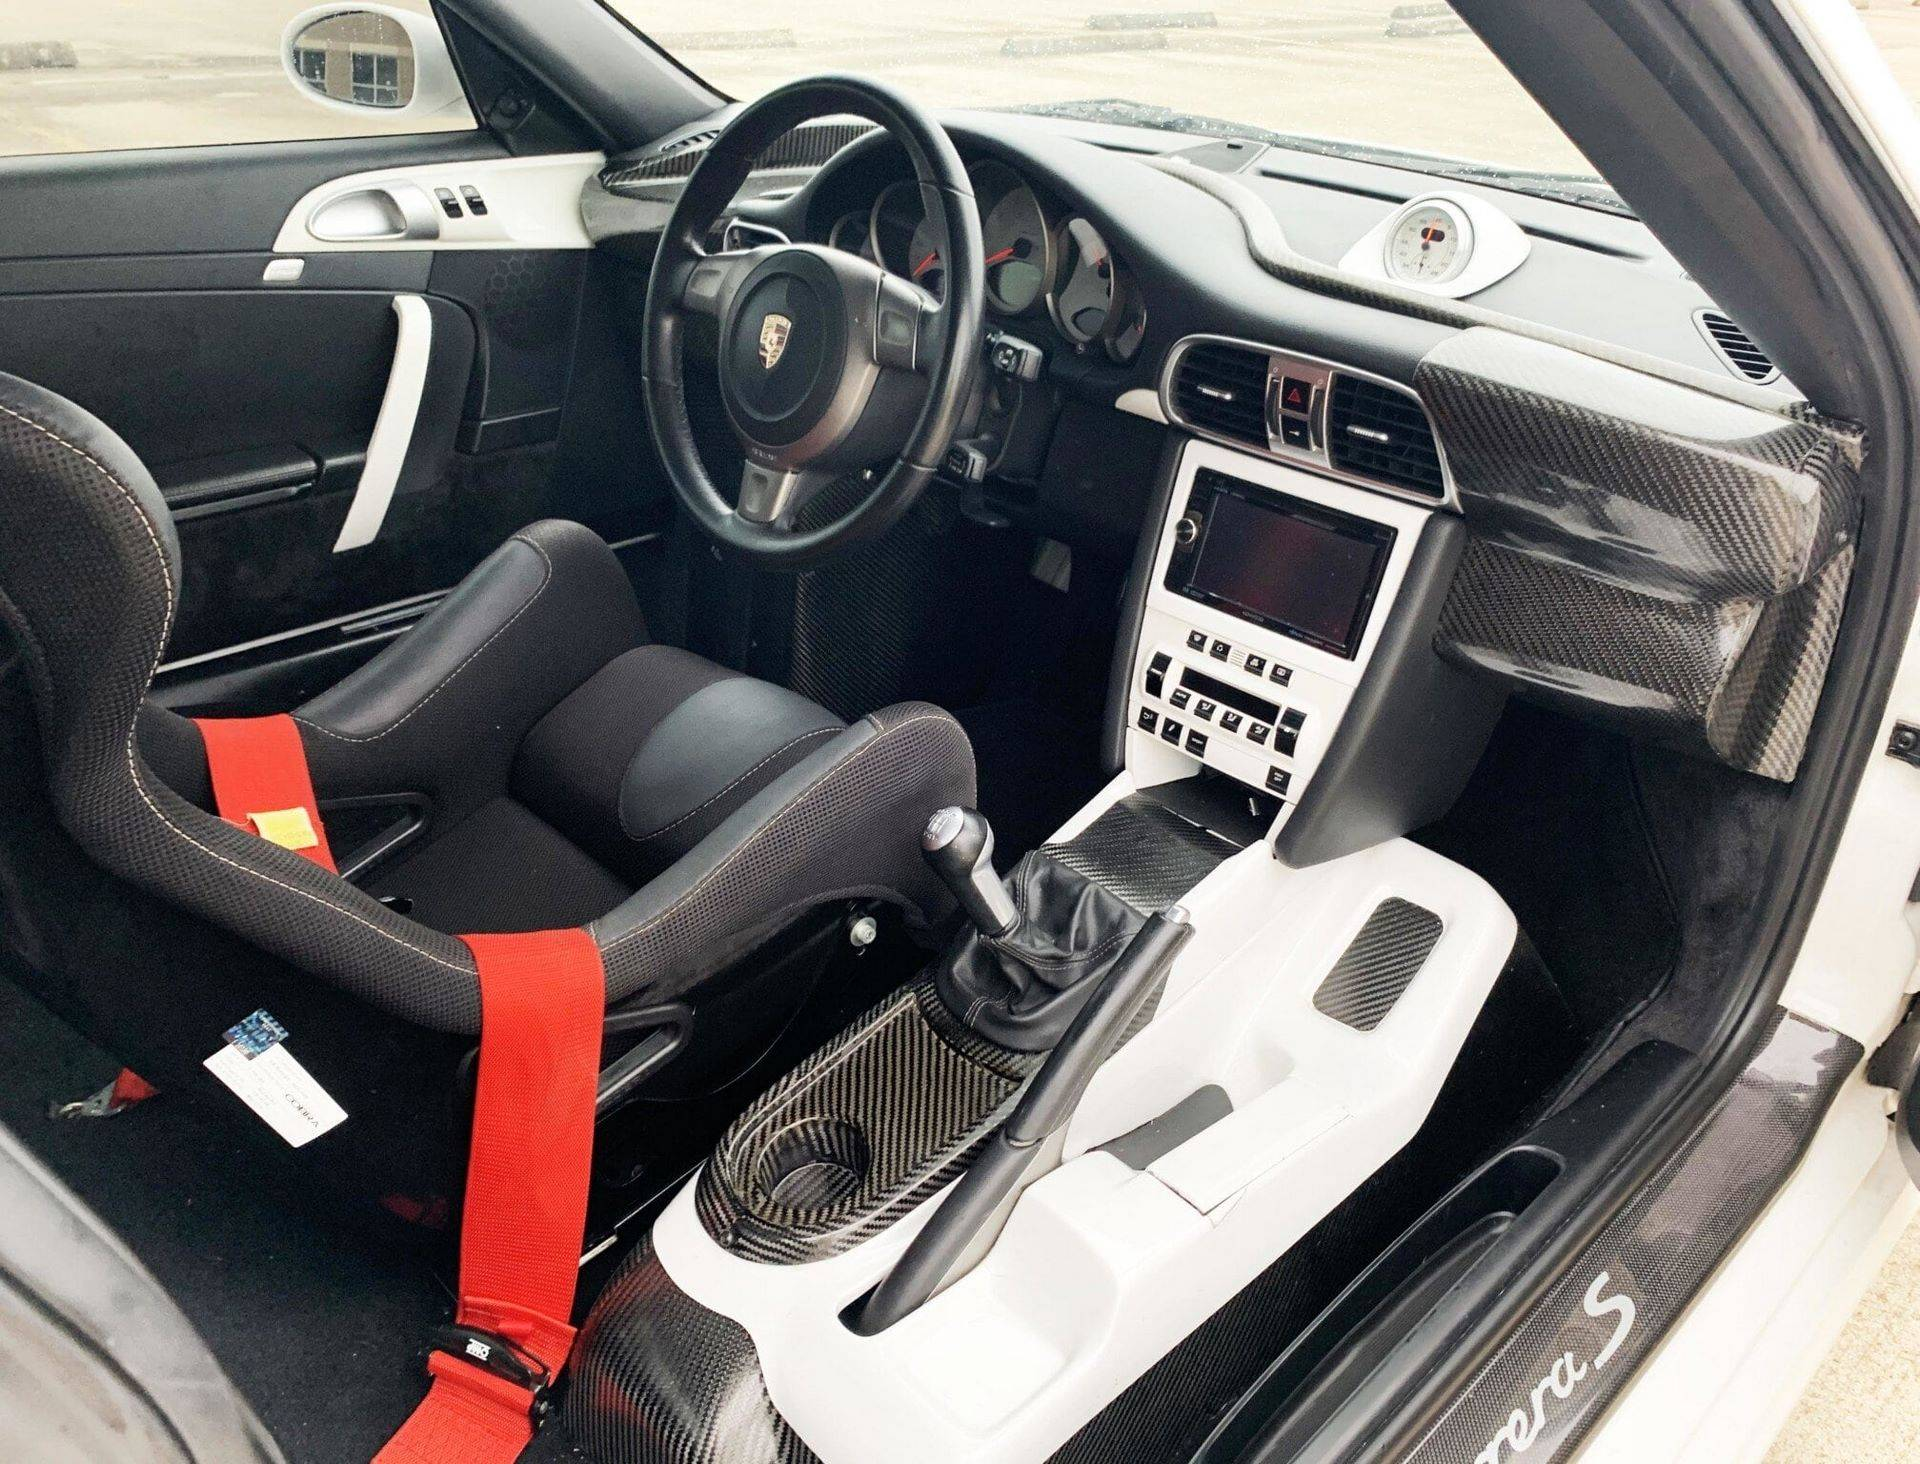 Center-Seat-Porsche-911-Carrera-S-2008-27